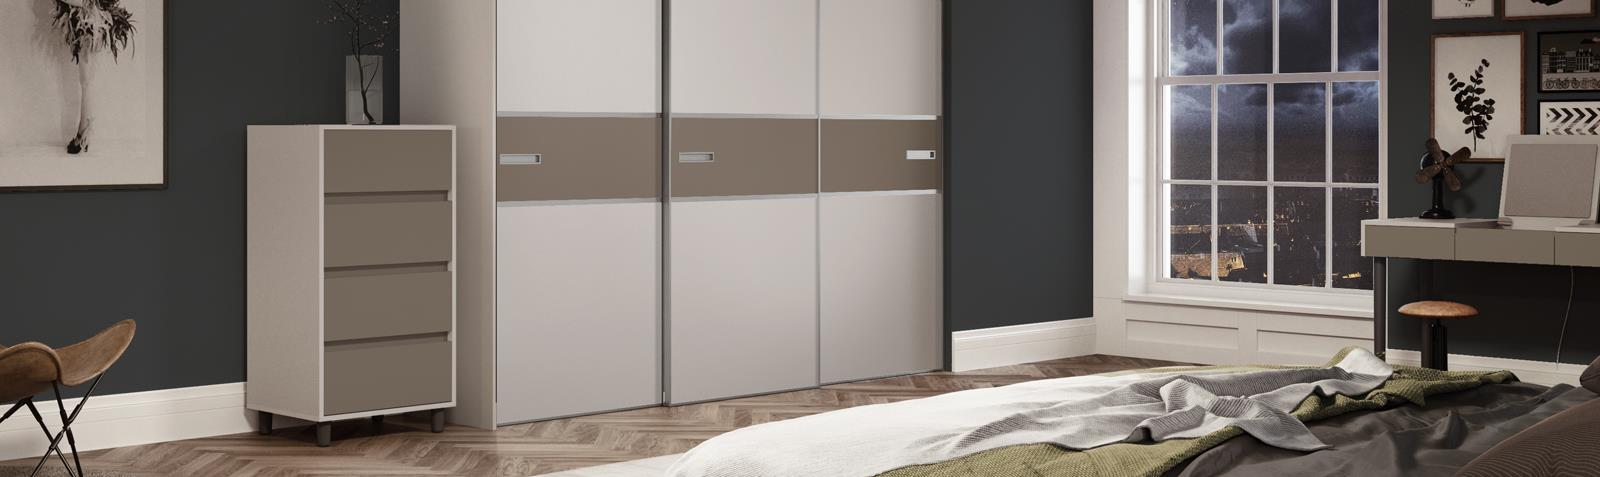 Premium Mini 3 panel Fineline Stone Grey / Satin Cashmere doors with Polished Silver frame | Spaceslide & Premium Mini: 3 panel Fineline Stone Grey / Satin Cashmere doors ...